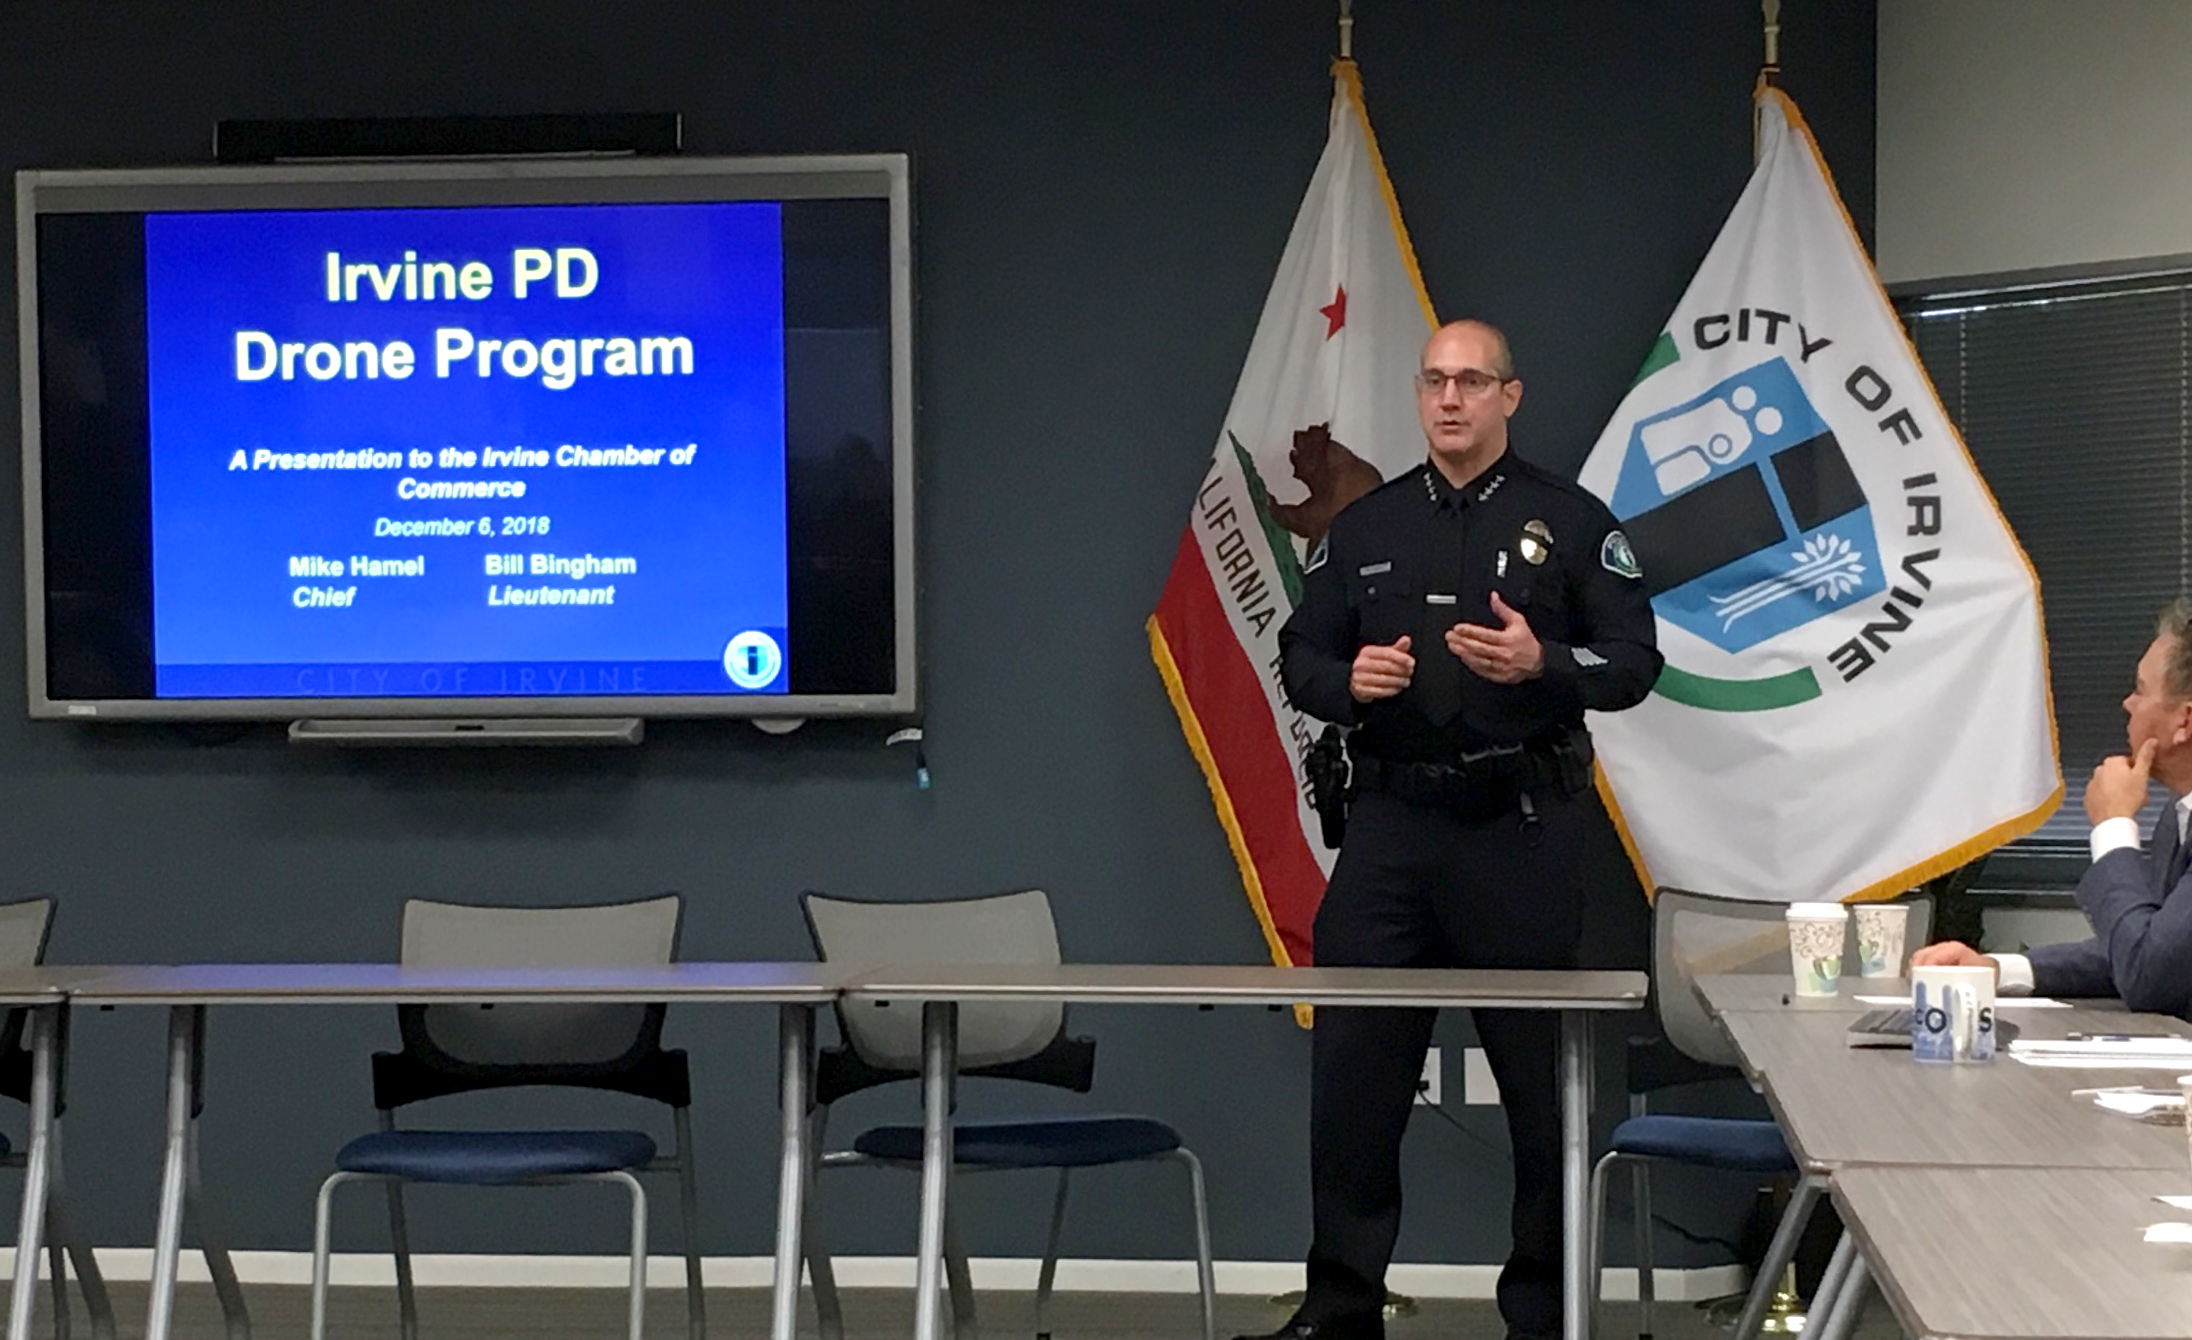 Irvine Police Chief Mike Hamel Presents New Drone Program Photo - Click Here to See